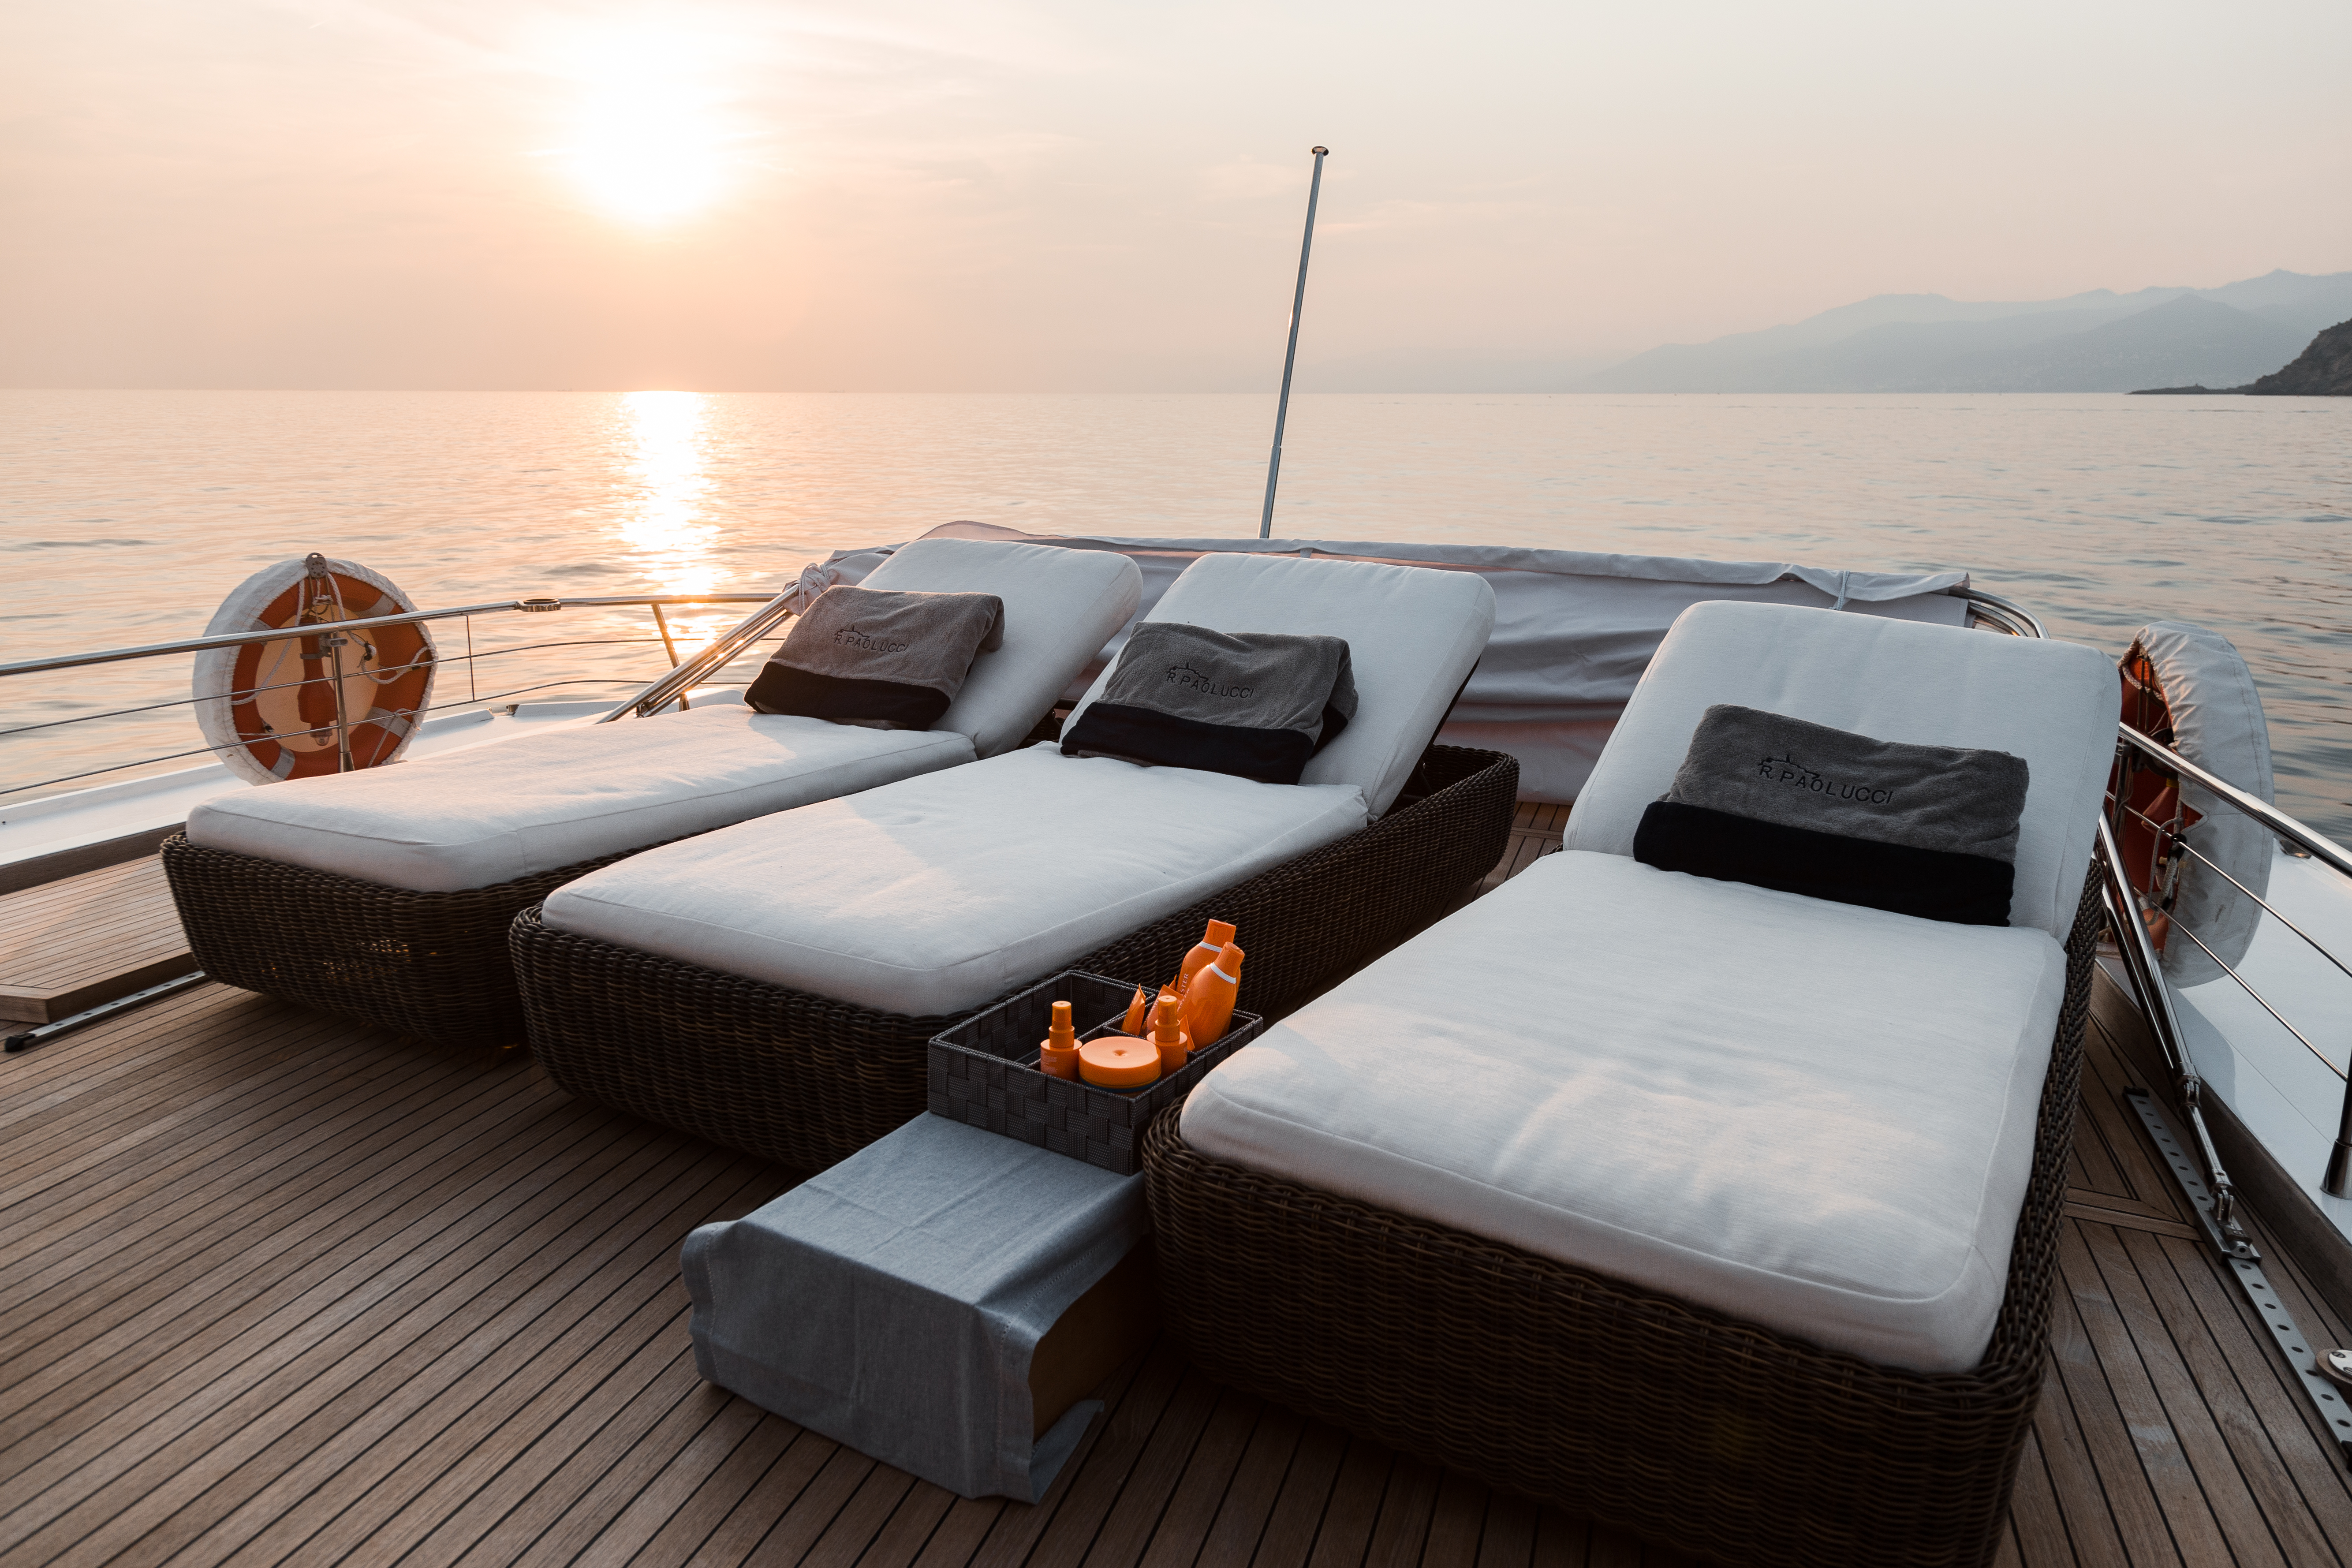 M/Y PAOLUCCI yacht for charter sunbed